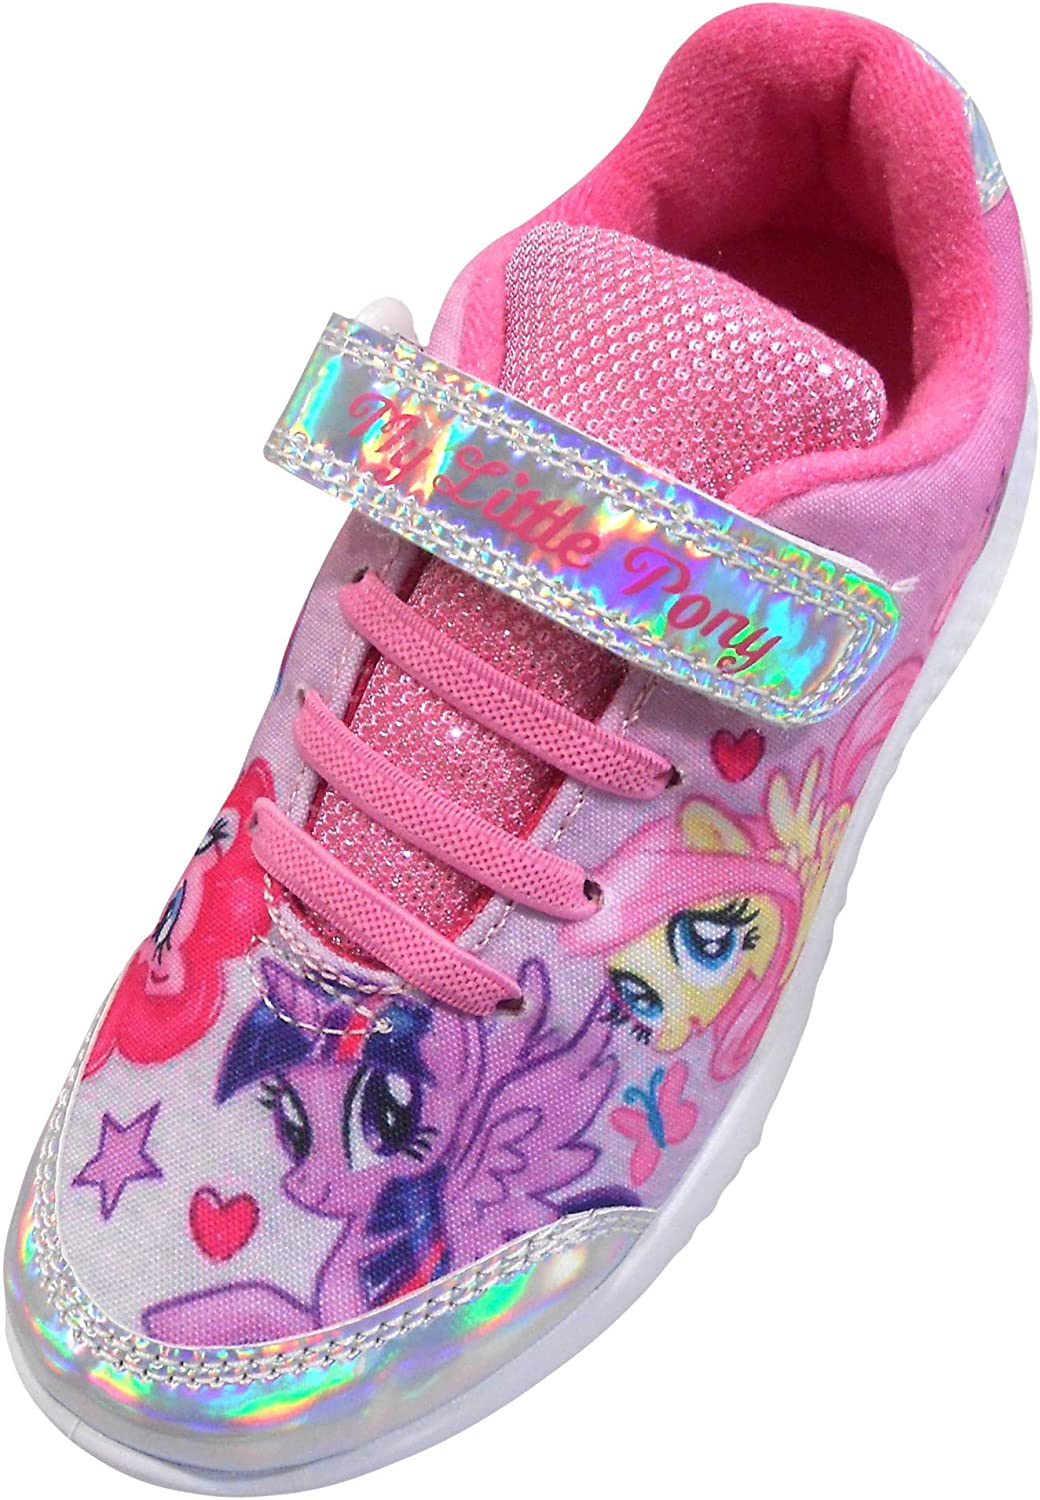 My Little Pony Trainers Shoes Size